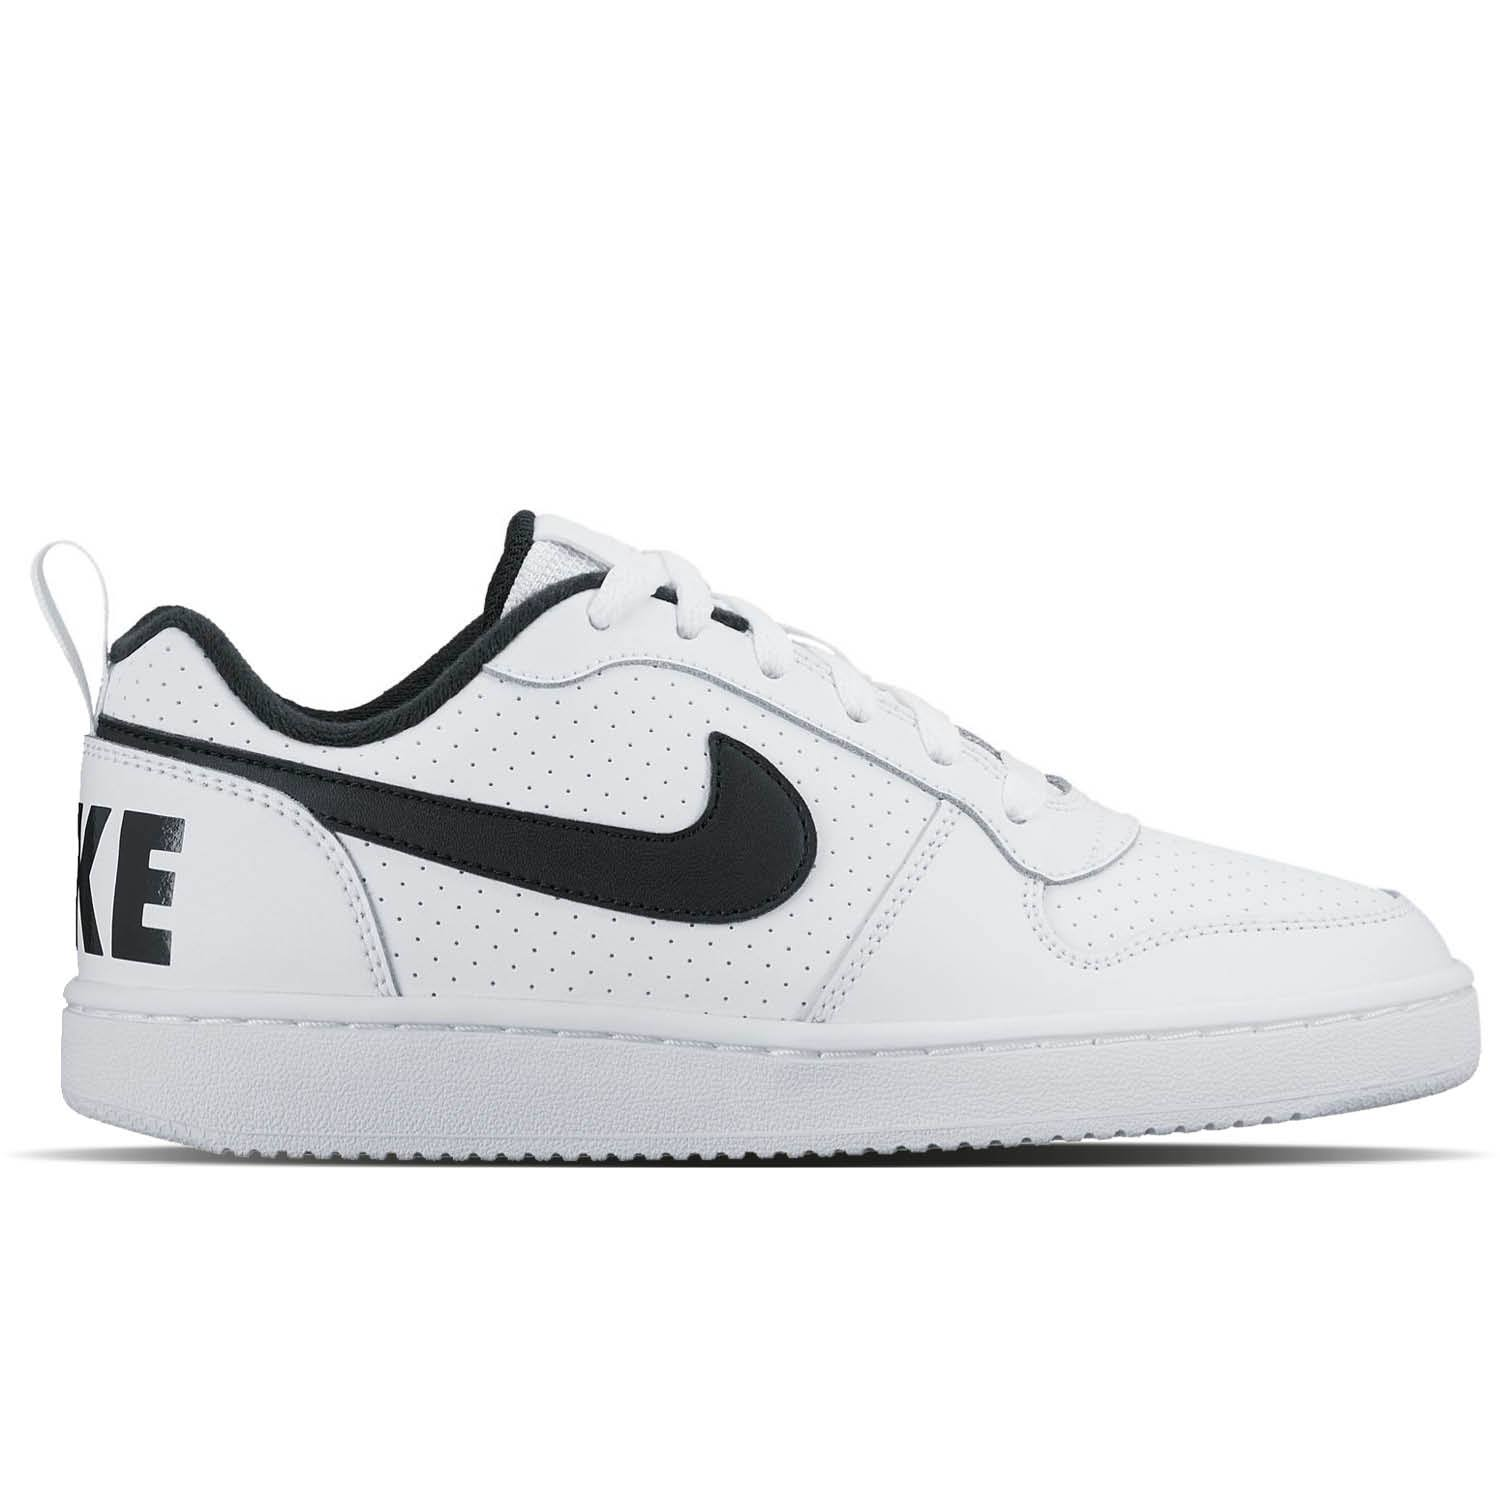 Nike 'Court Borough Low' Trainers